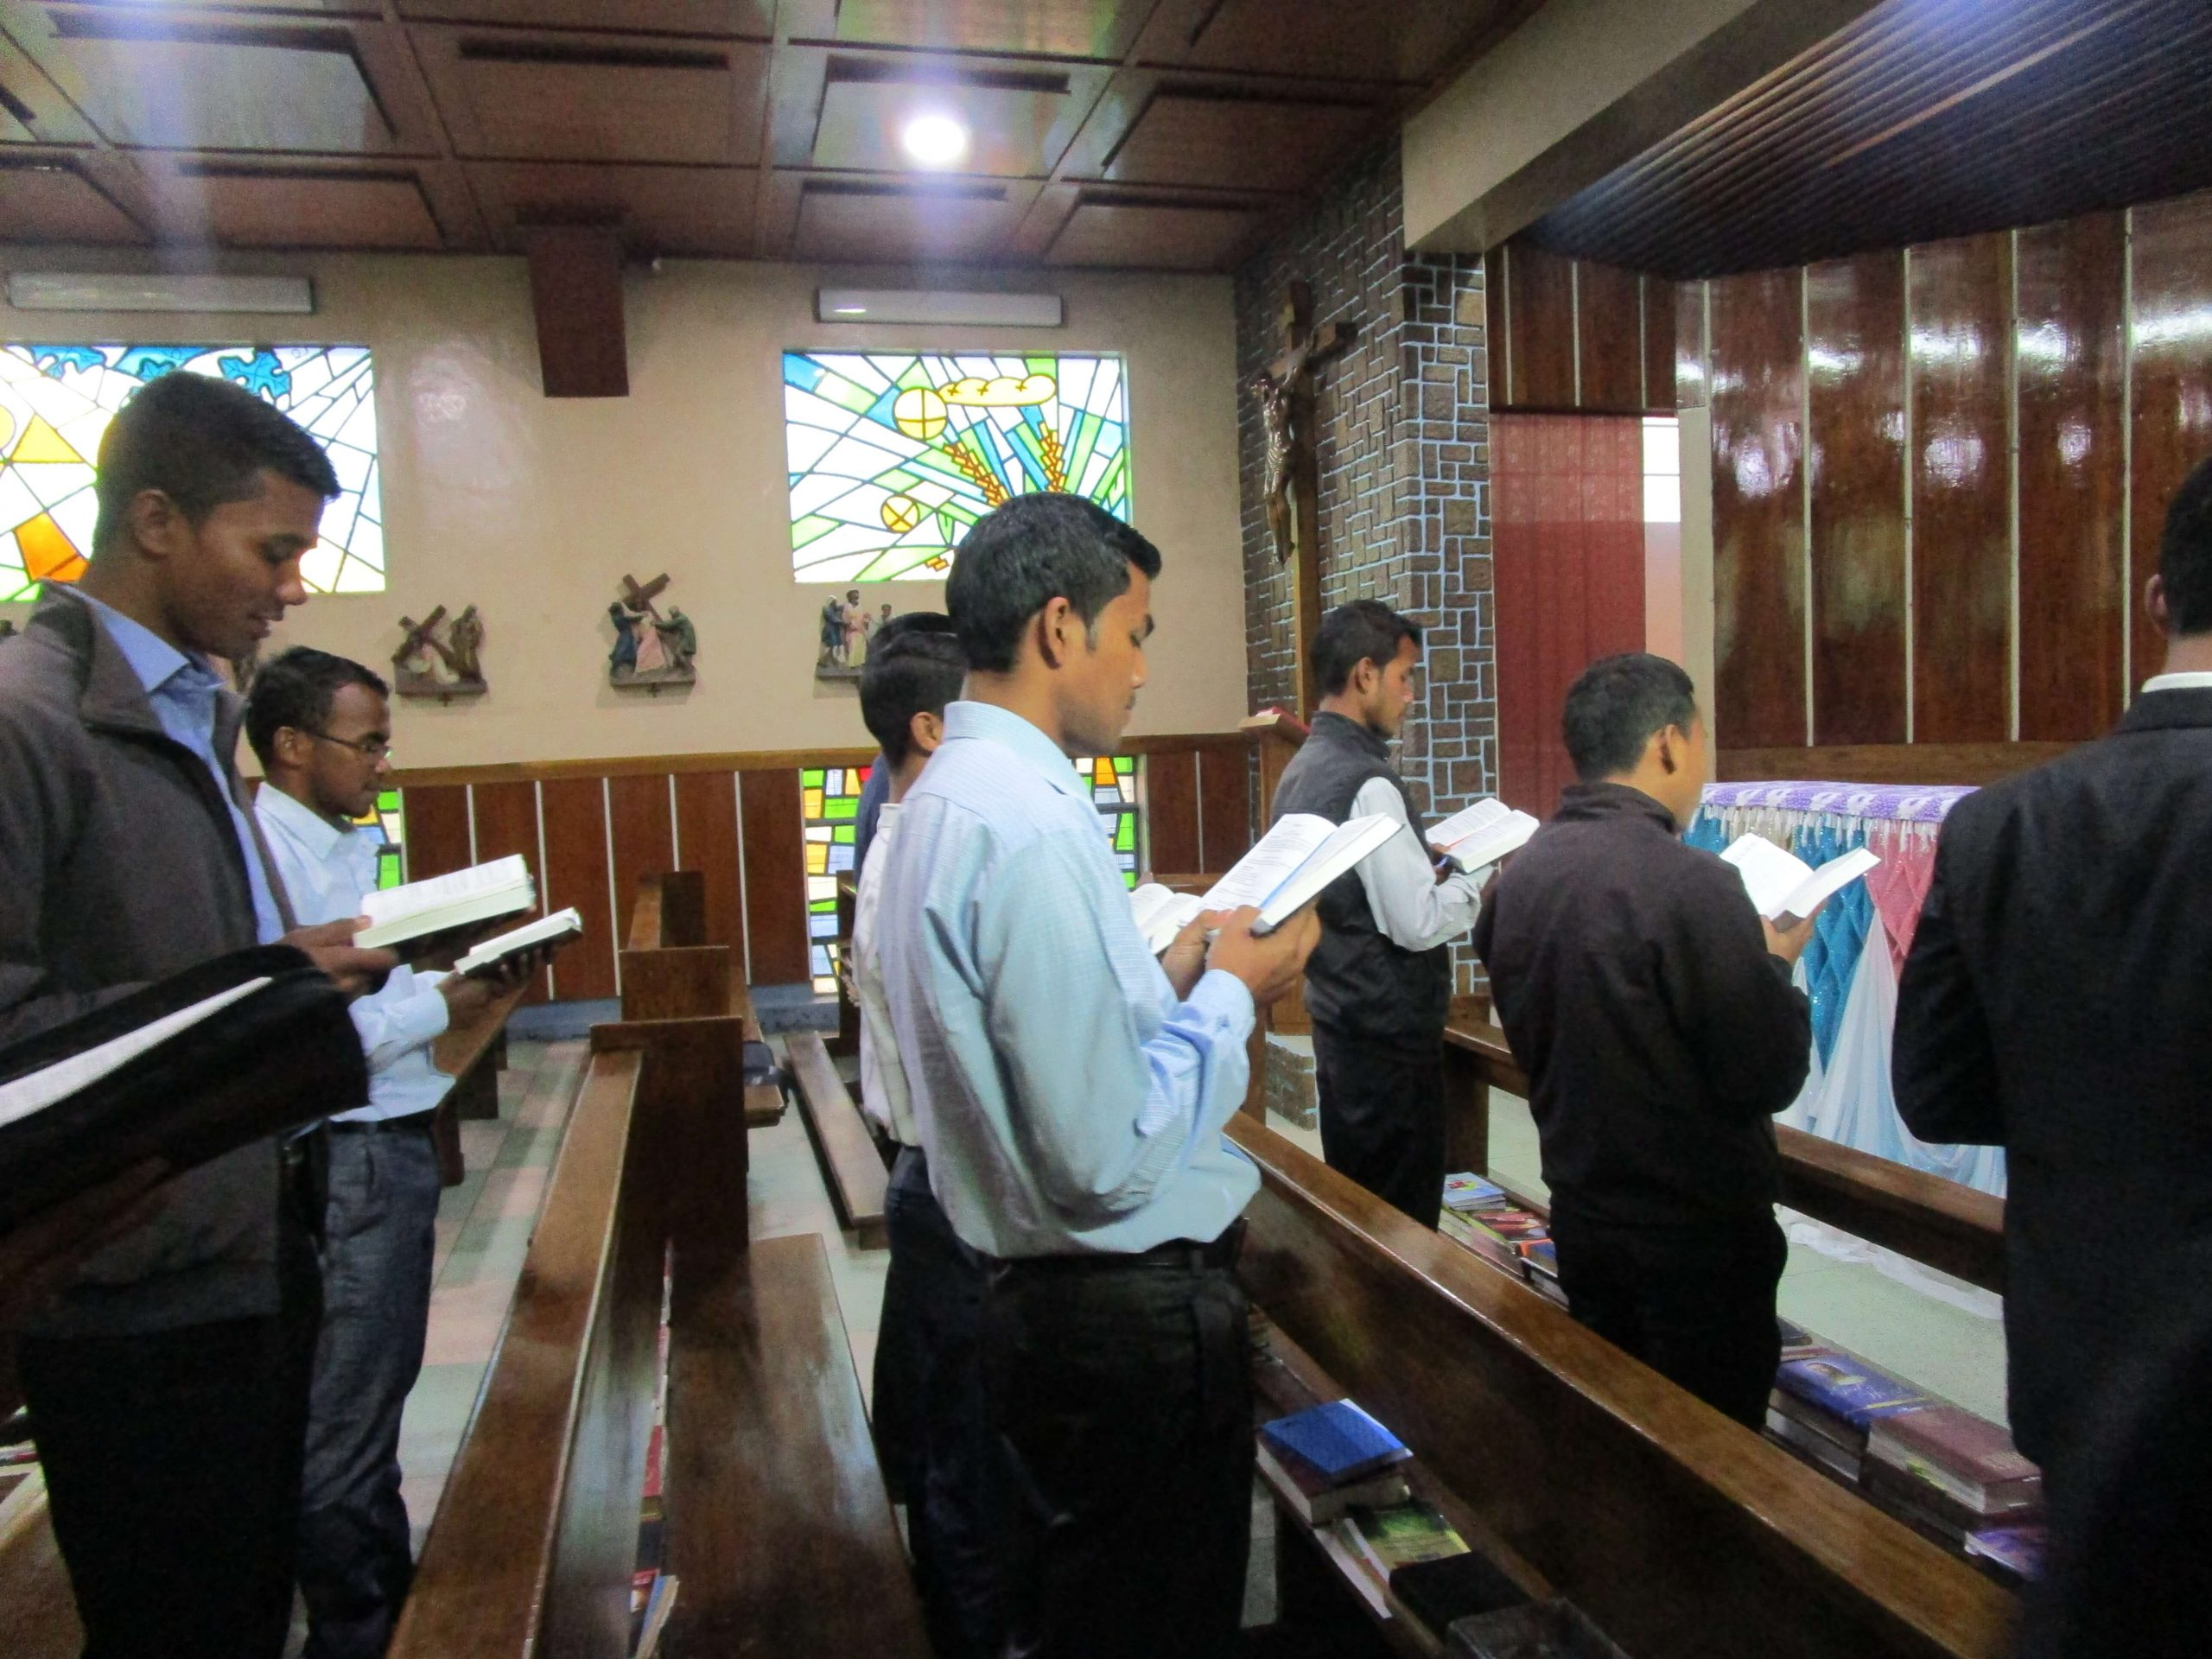 Seminarians from the Diocese of Jowai, India, at morning prayers